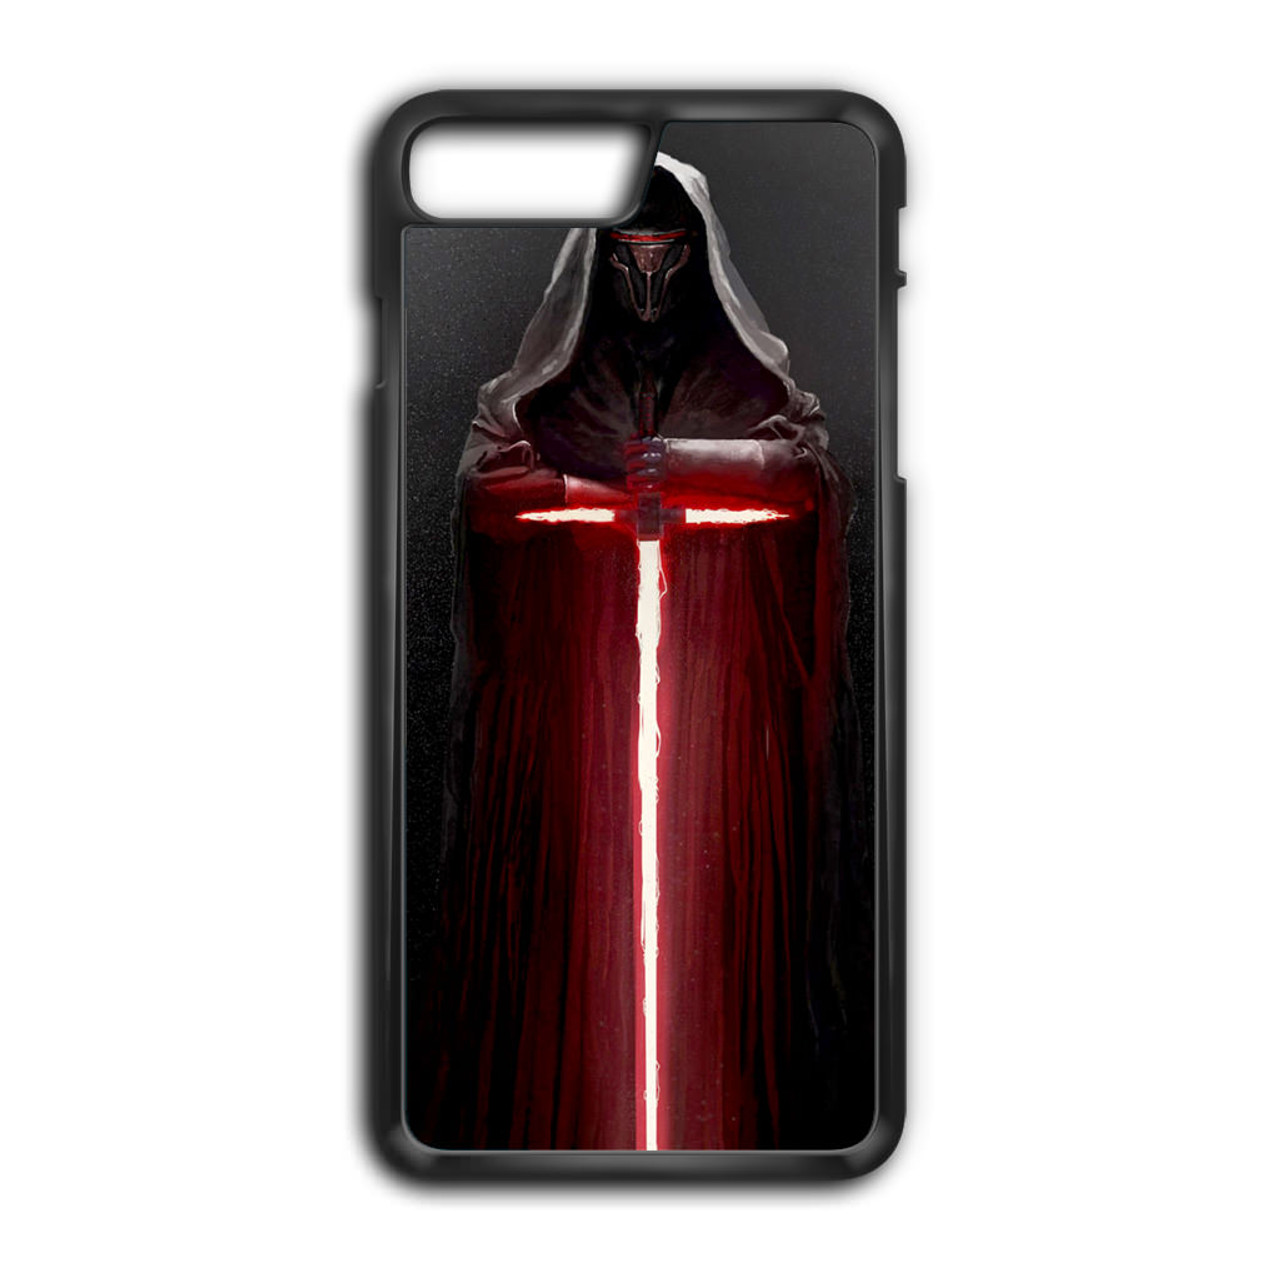 star wars iphone 7 case